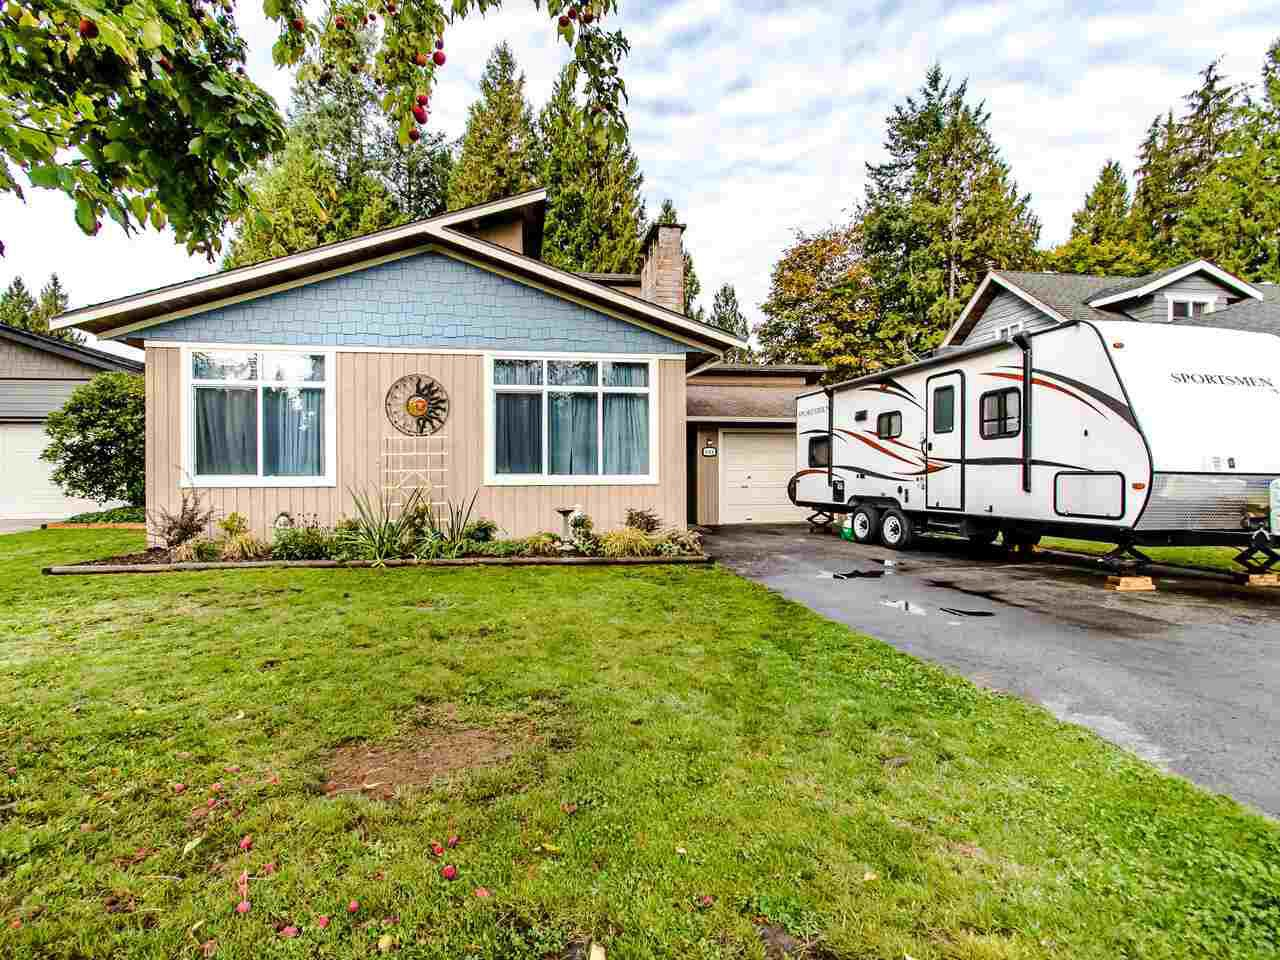 """Main Photo: 4521 199 Street in Langley: Langley City House for sale in """"Hunter Park"""" : MLS®# R2511143"""